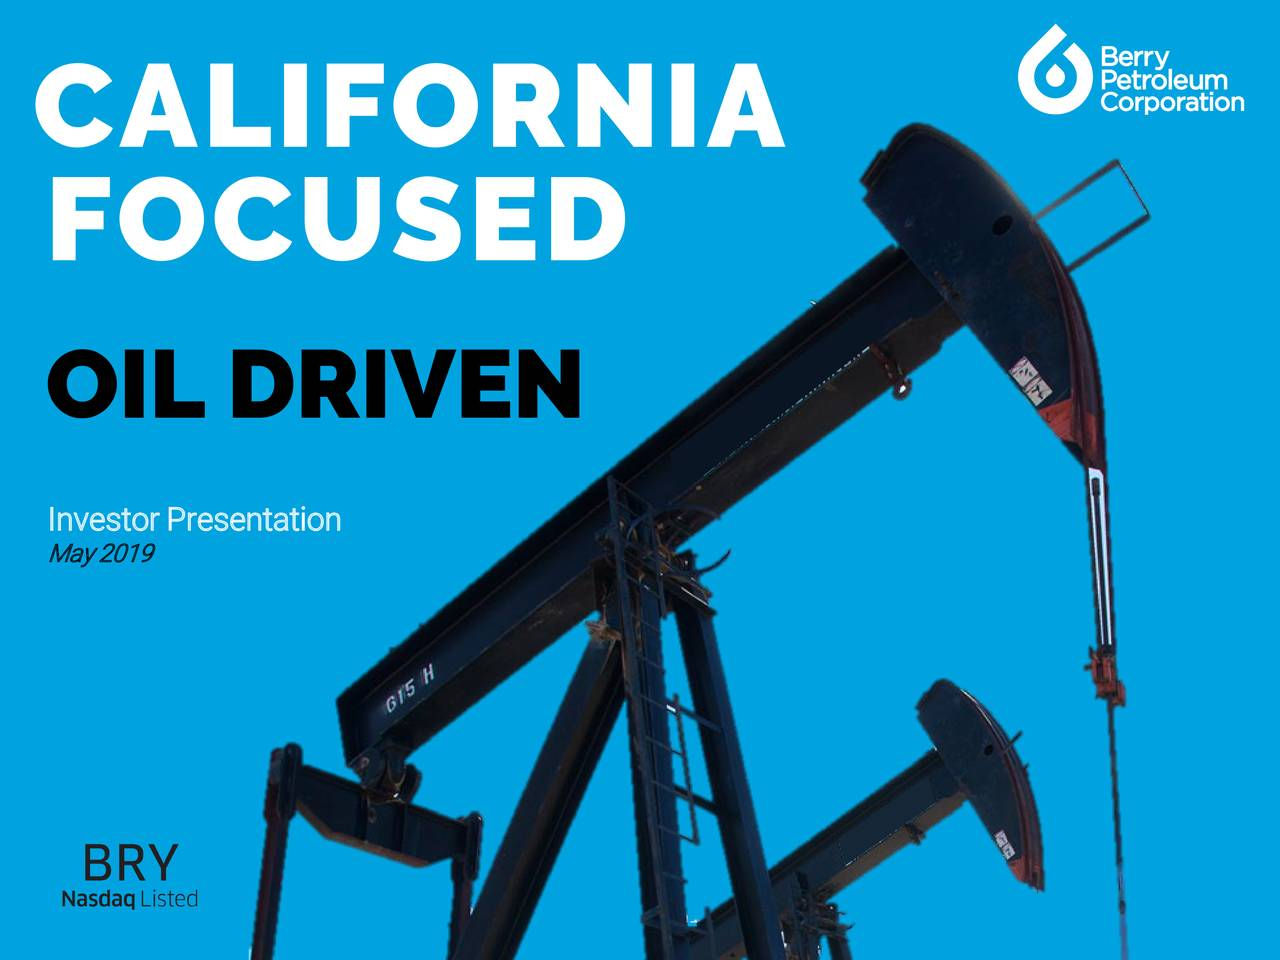 FOCUSED OIL DRIVEN May 2019 Presentation